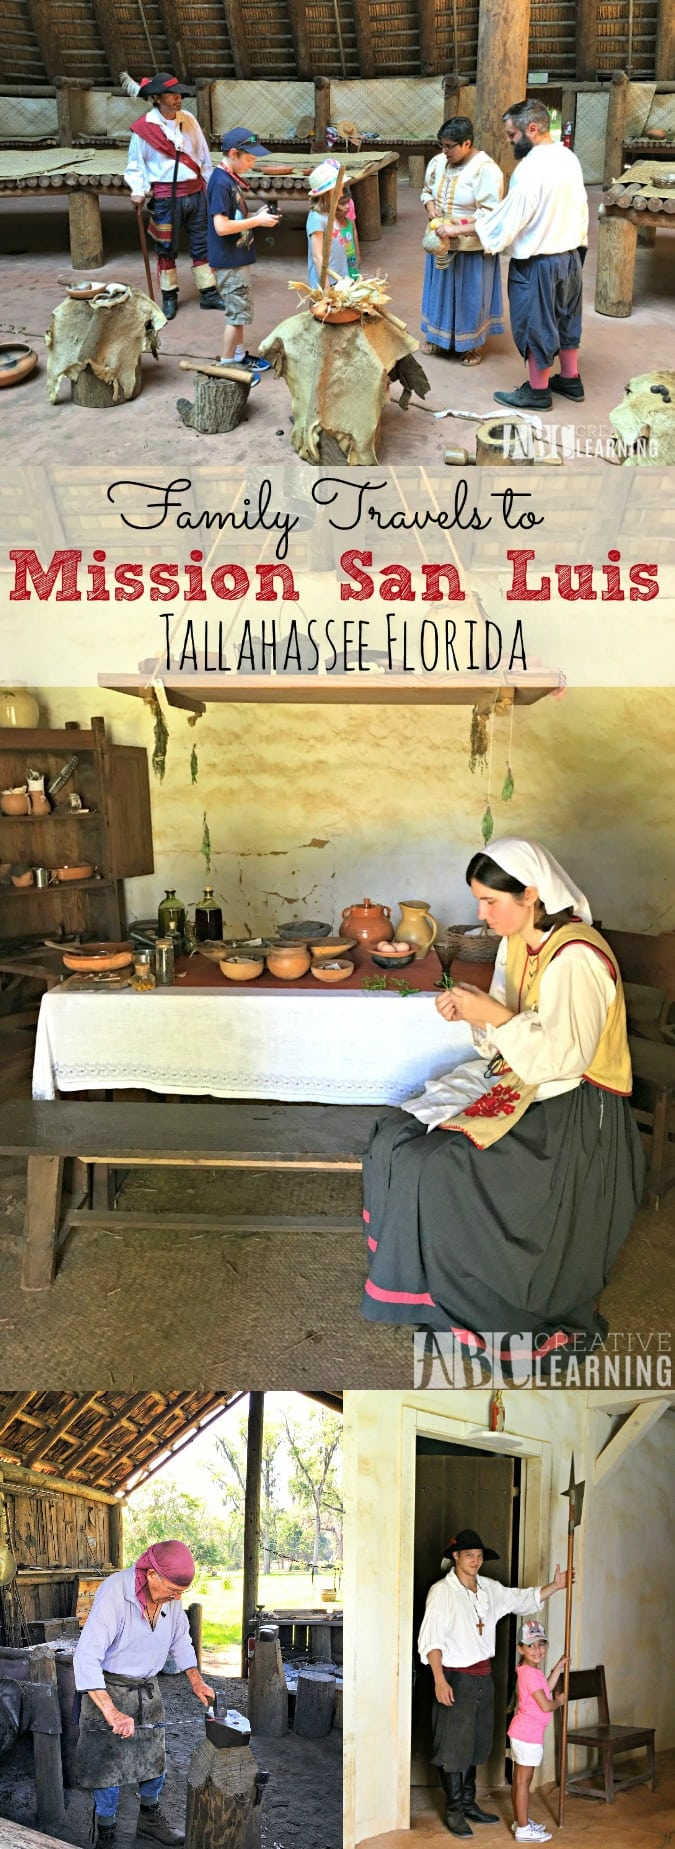 Visiting Mission San Luis in Tallahassee Florida - simplytodaylife.com